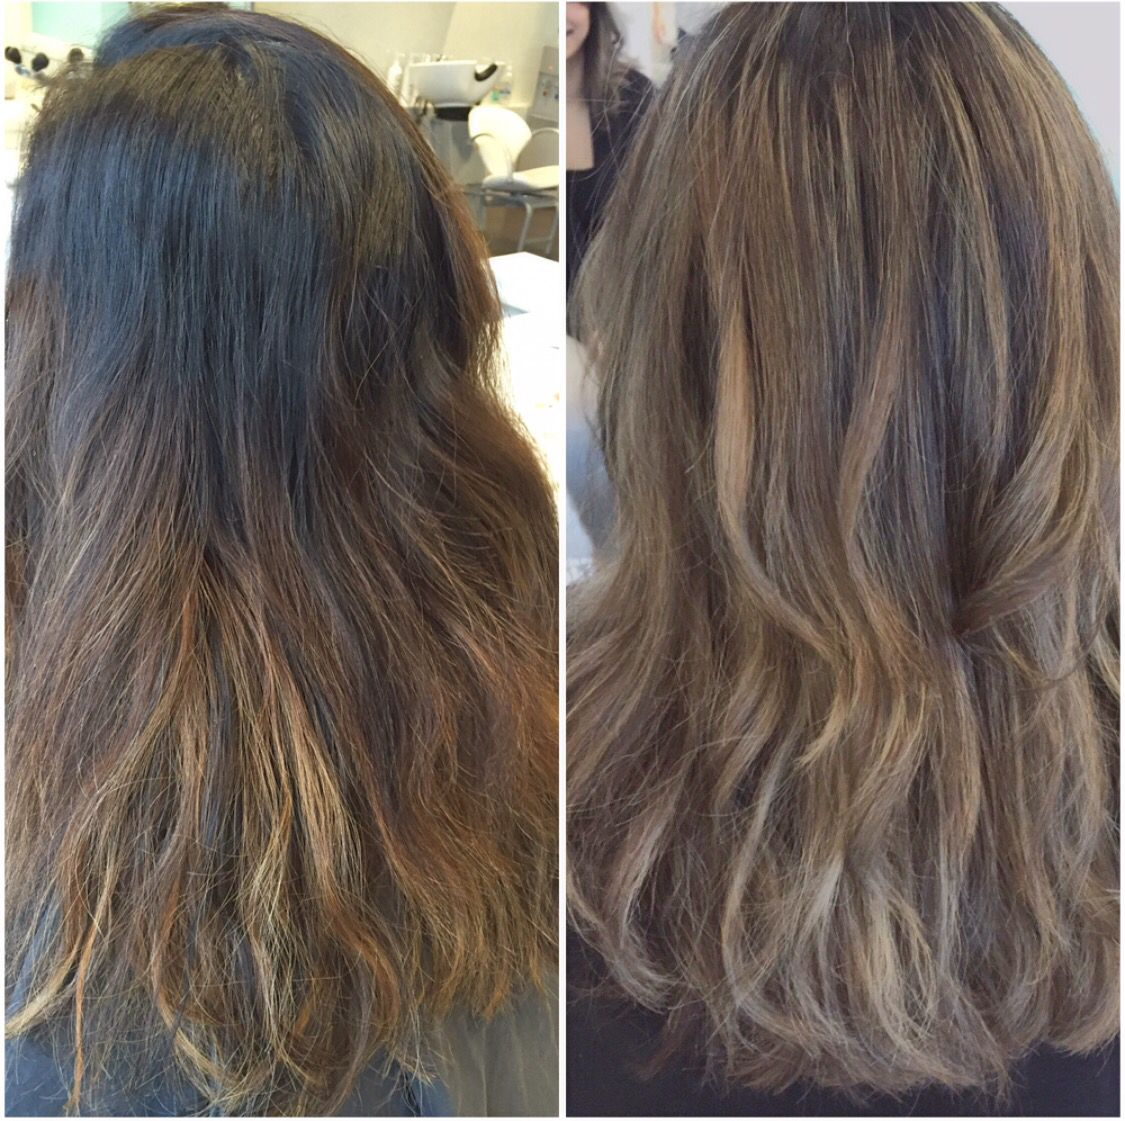 Root touch upblended and toned up her previously grown out root touch upblended and toned up her previously grown out highlights pmusecretfo Gallery